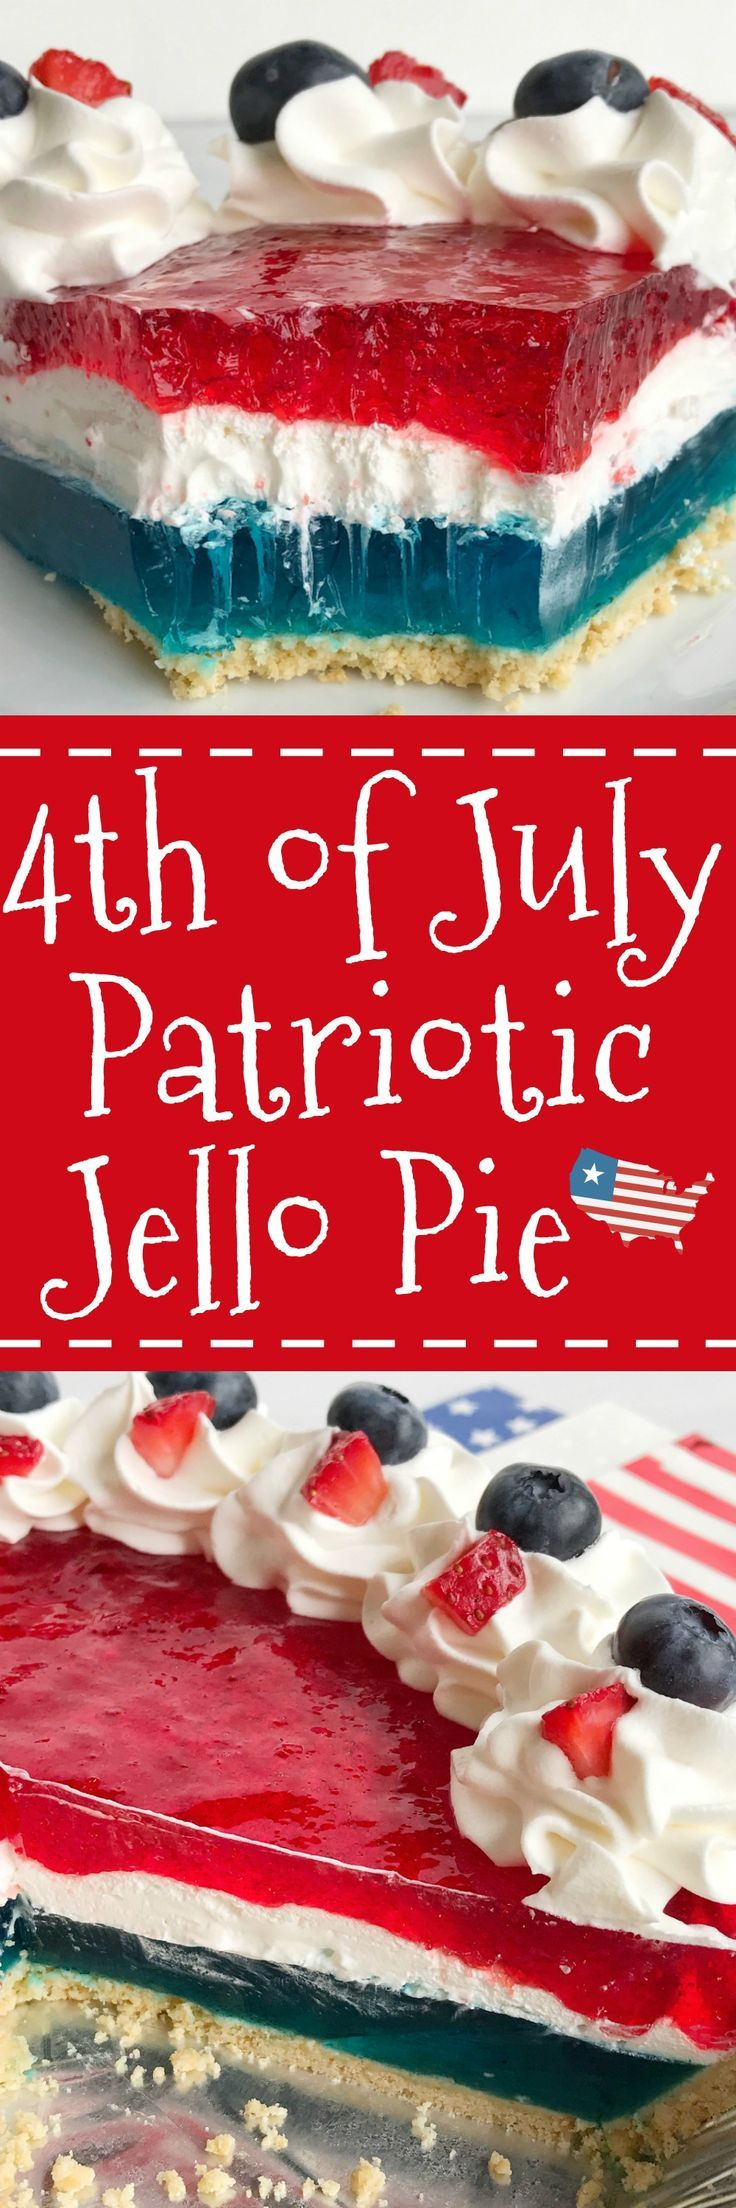 Celebrate the 4th of July with this delicious, totally festive, and easy patriotic Jello pie! 3 layers of red, white, and blue inside a store-bought prepared graham cracker crust. Top with additional Cool Whip and fresh fruit for a show stopper dessert at